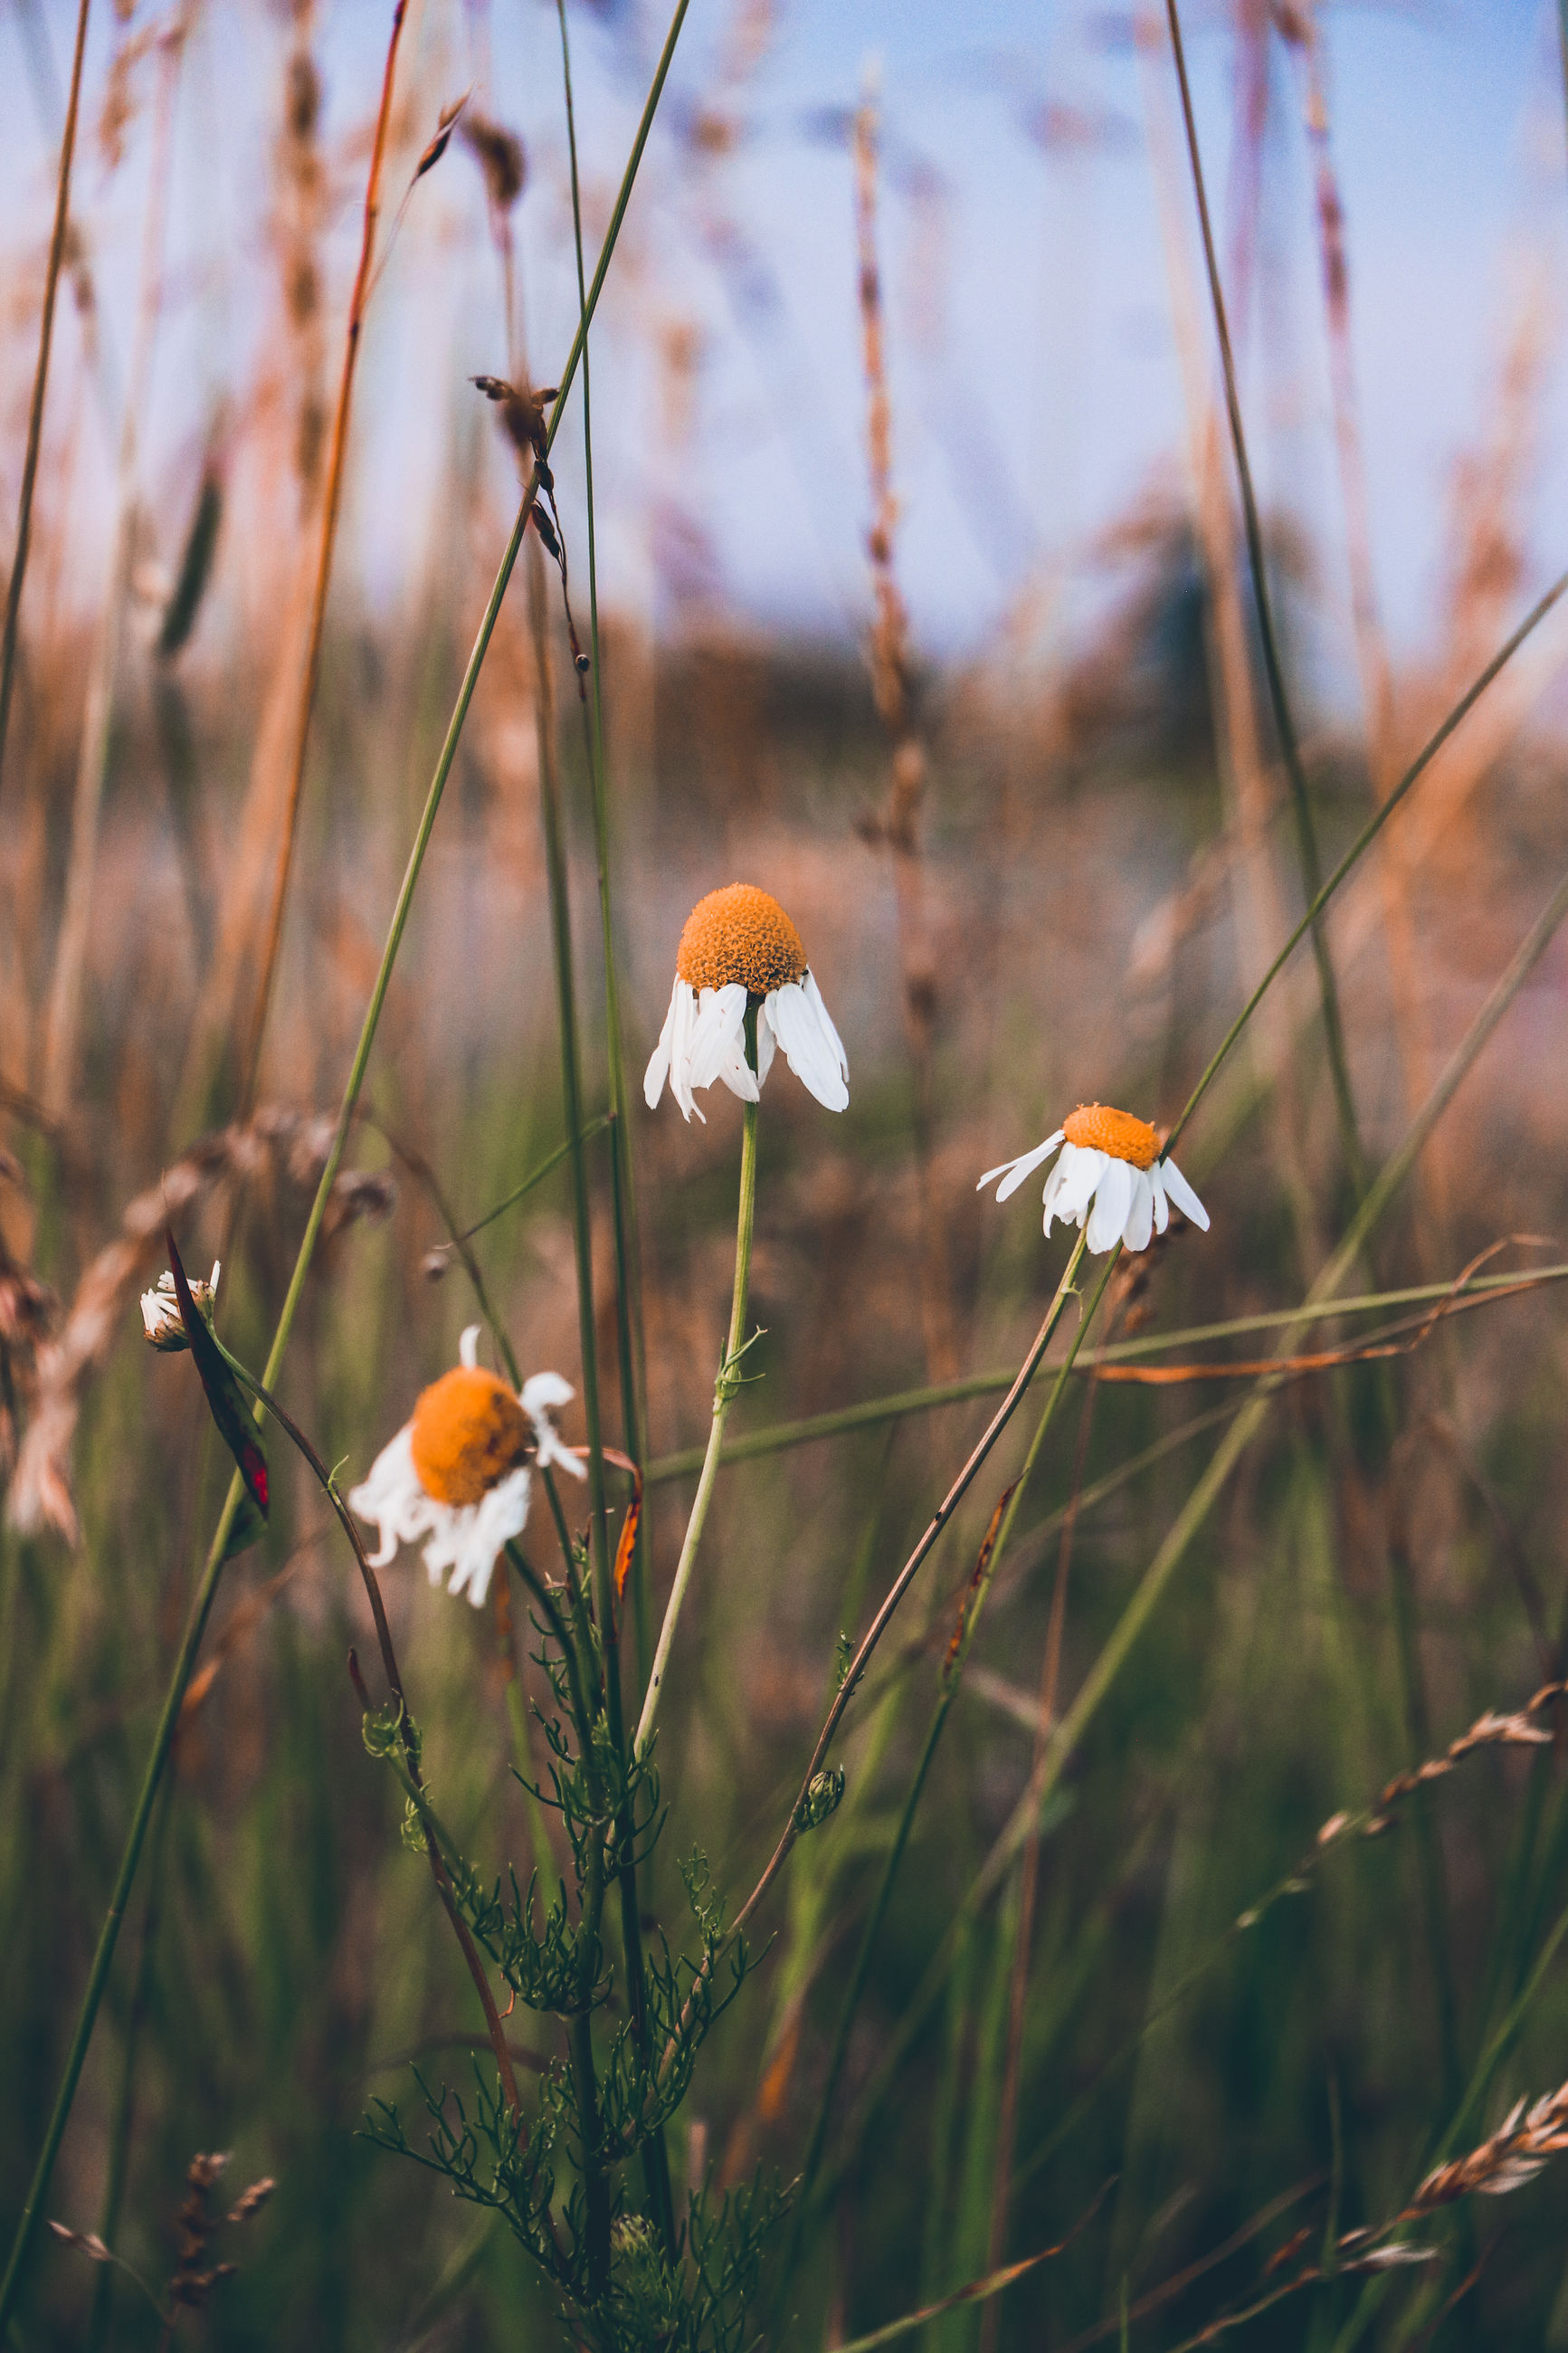 nature, plant, grass, flower, autumn, leaf, sunlight, beauty in nature, prairie, no people, flowering plant, meadow, growth, macro photography, land, natural environment, focus on foreground, close-up, outdoors, sky, freshness, food, day, fragility, animal wildlife, wildflower, field, tree, environment, animal, landscape, tranquility, selective focus, morning, non-urban scene, wildlife, animal themes